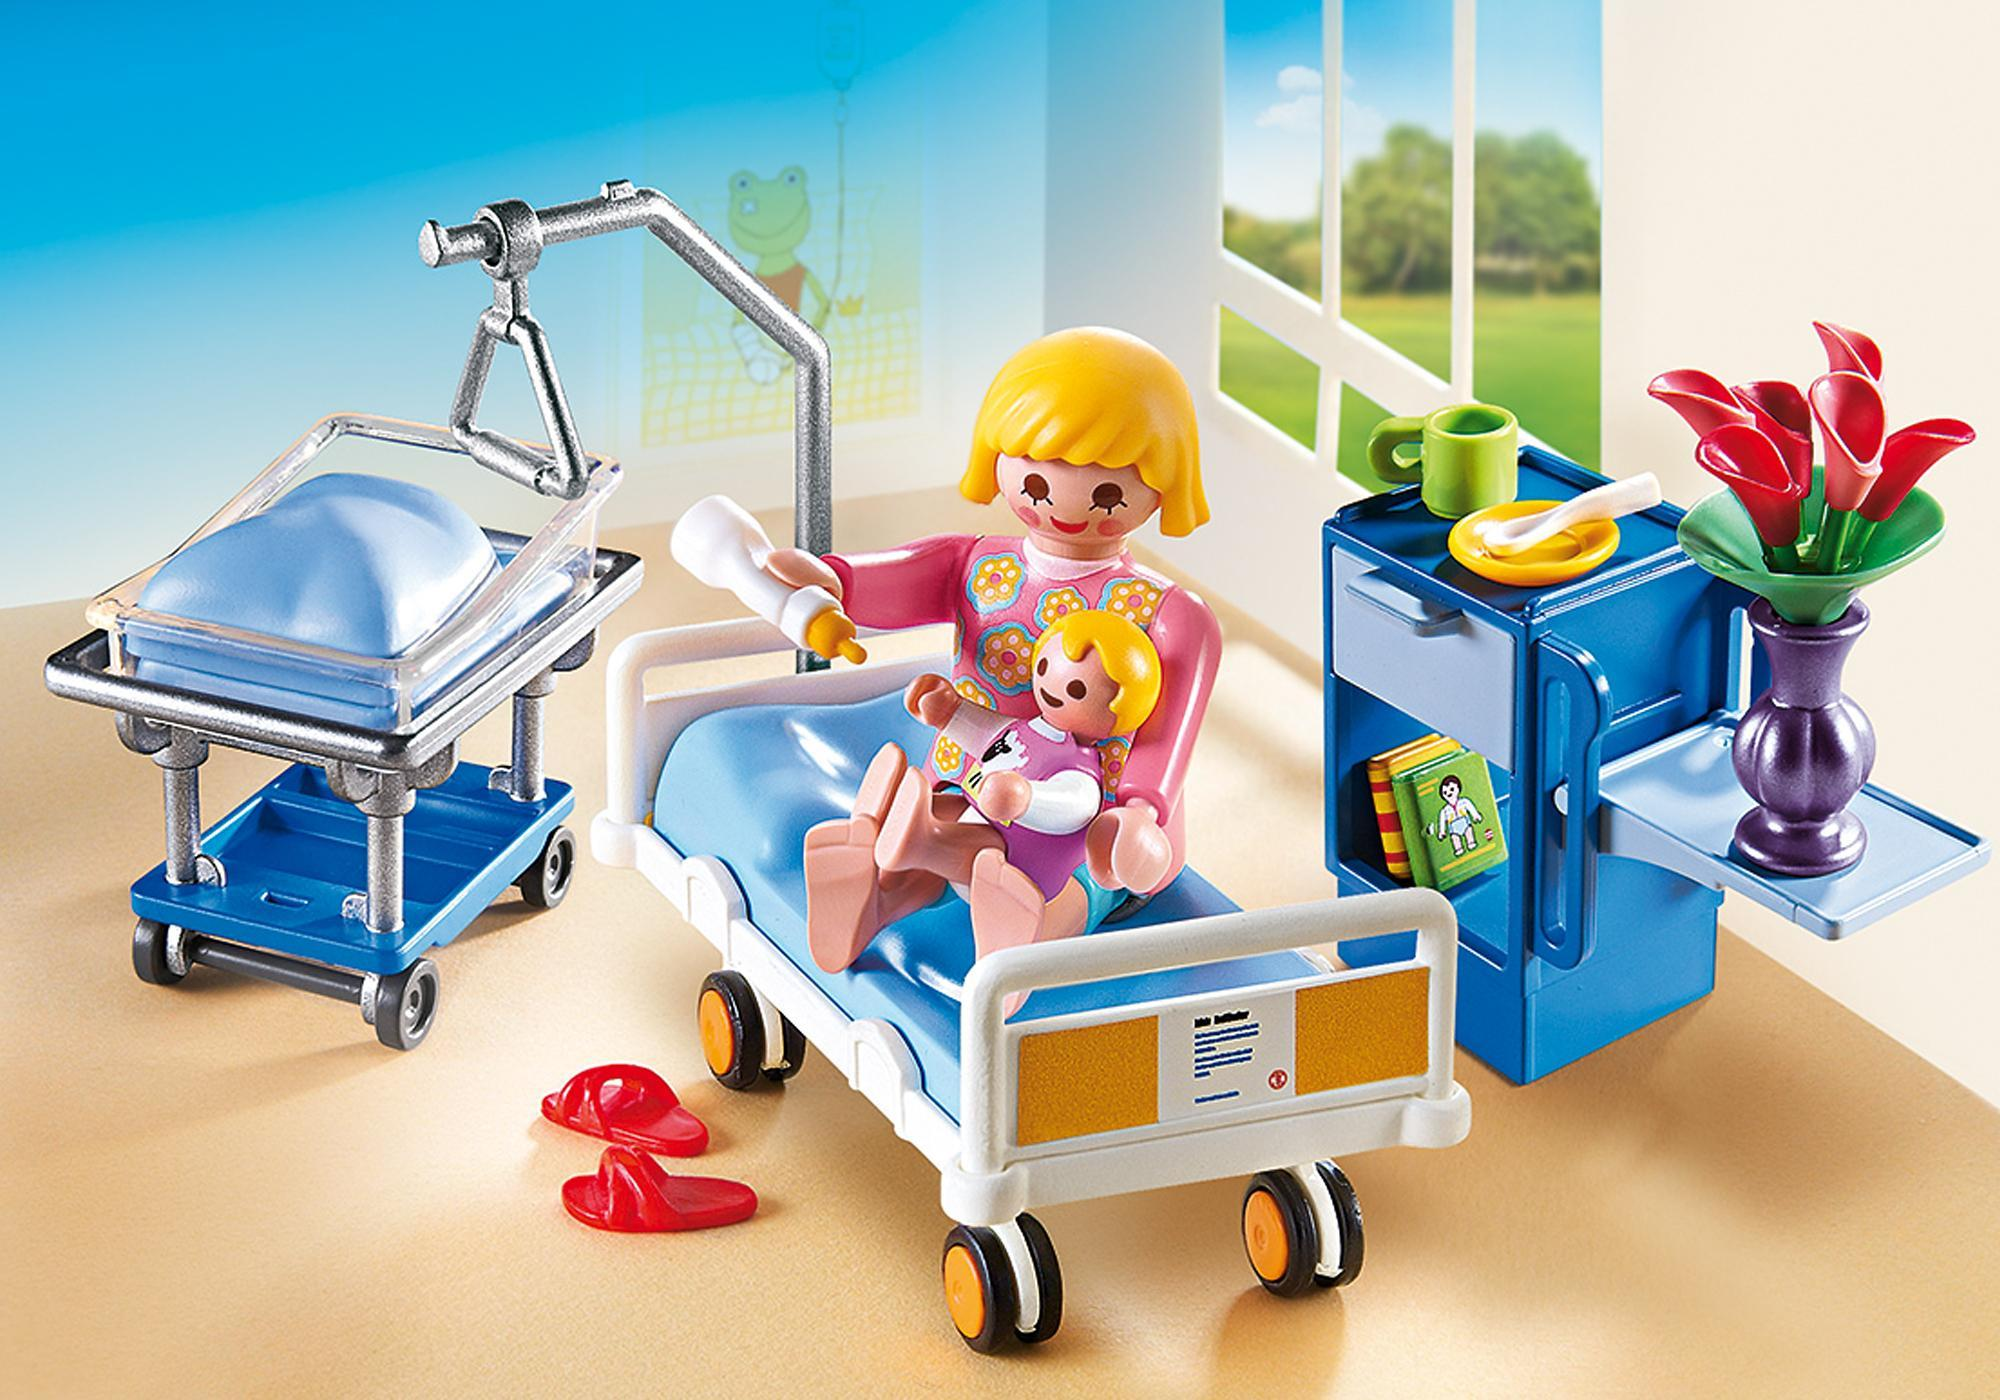 http://media.playmobil.com/i/playmobil/6660_product_detail